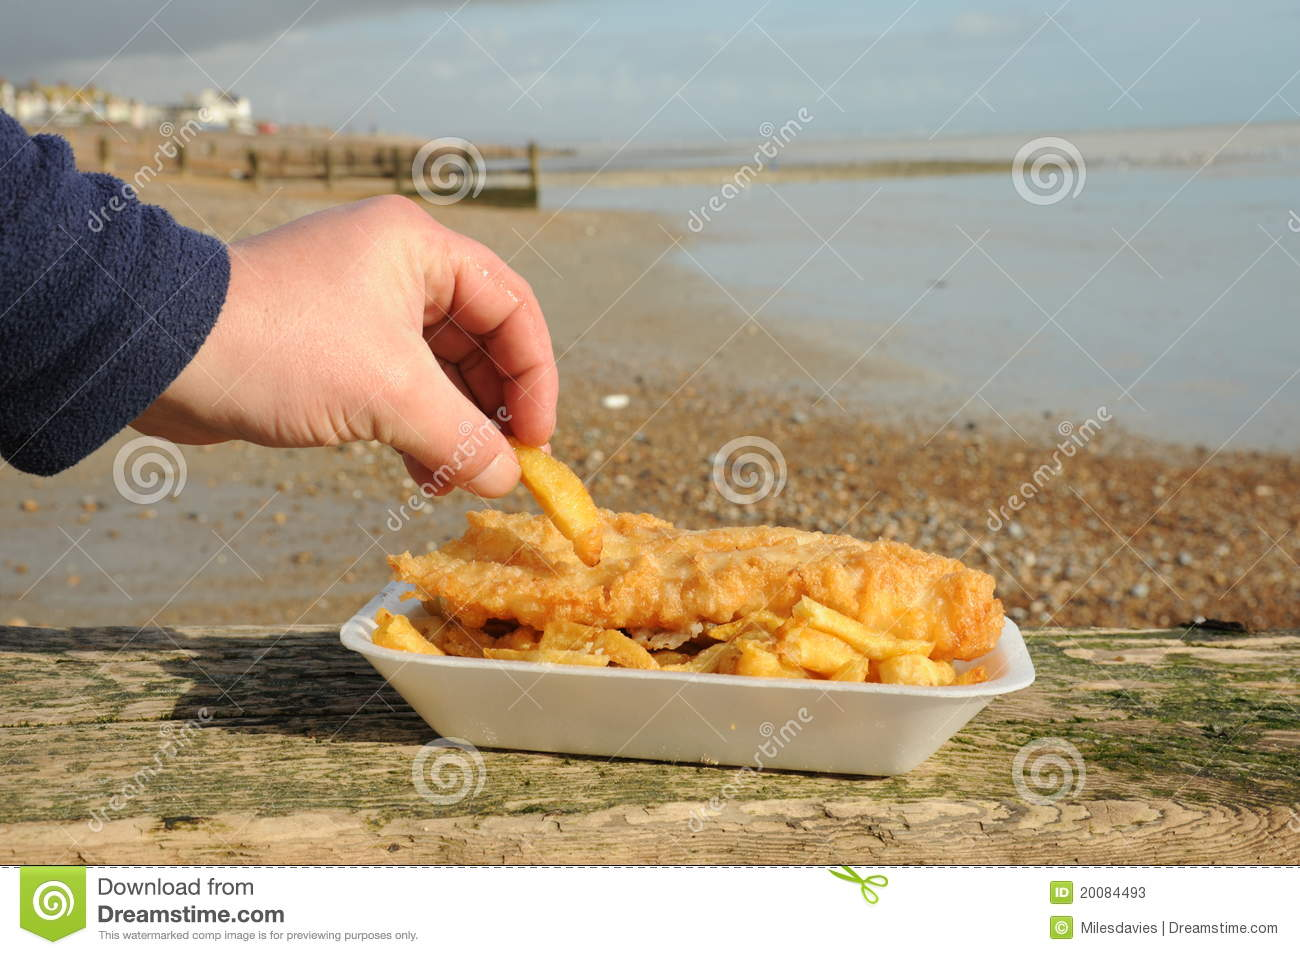 Eating fish and chips stock photos image 20084493 for Dreaming of eating fish